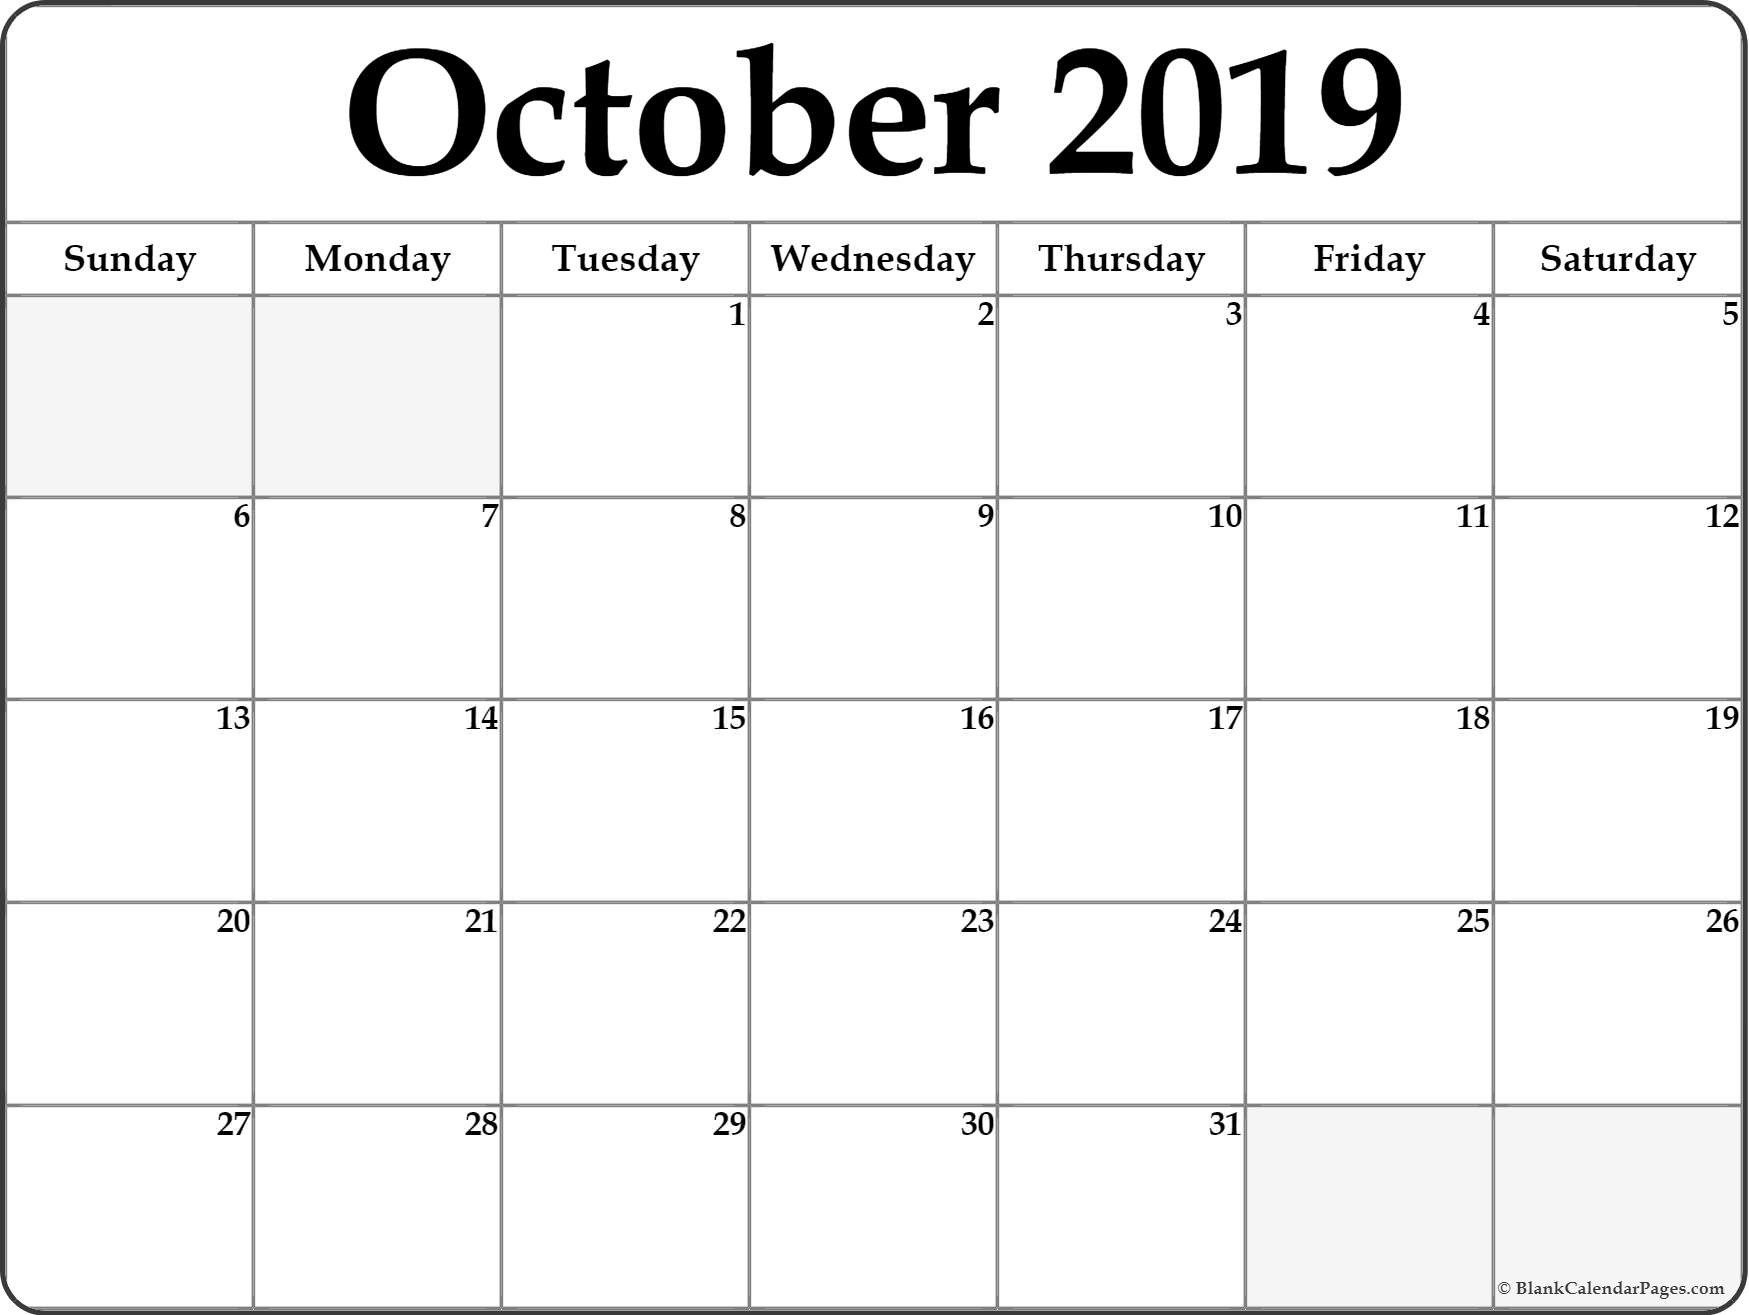 Fillable October 2019 Calendar Printable Free